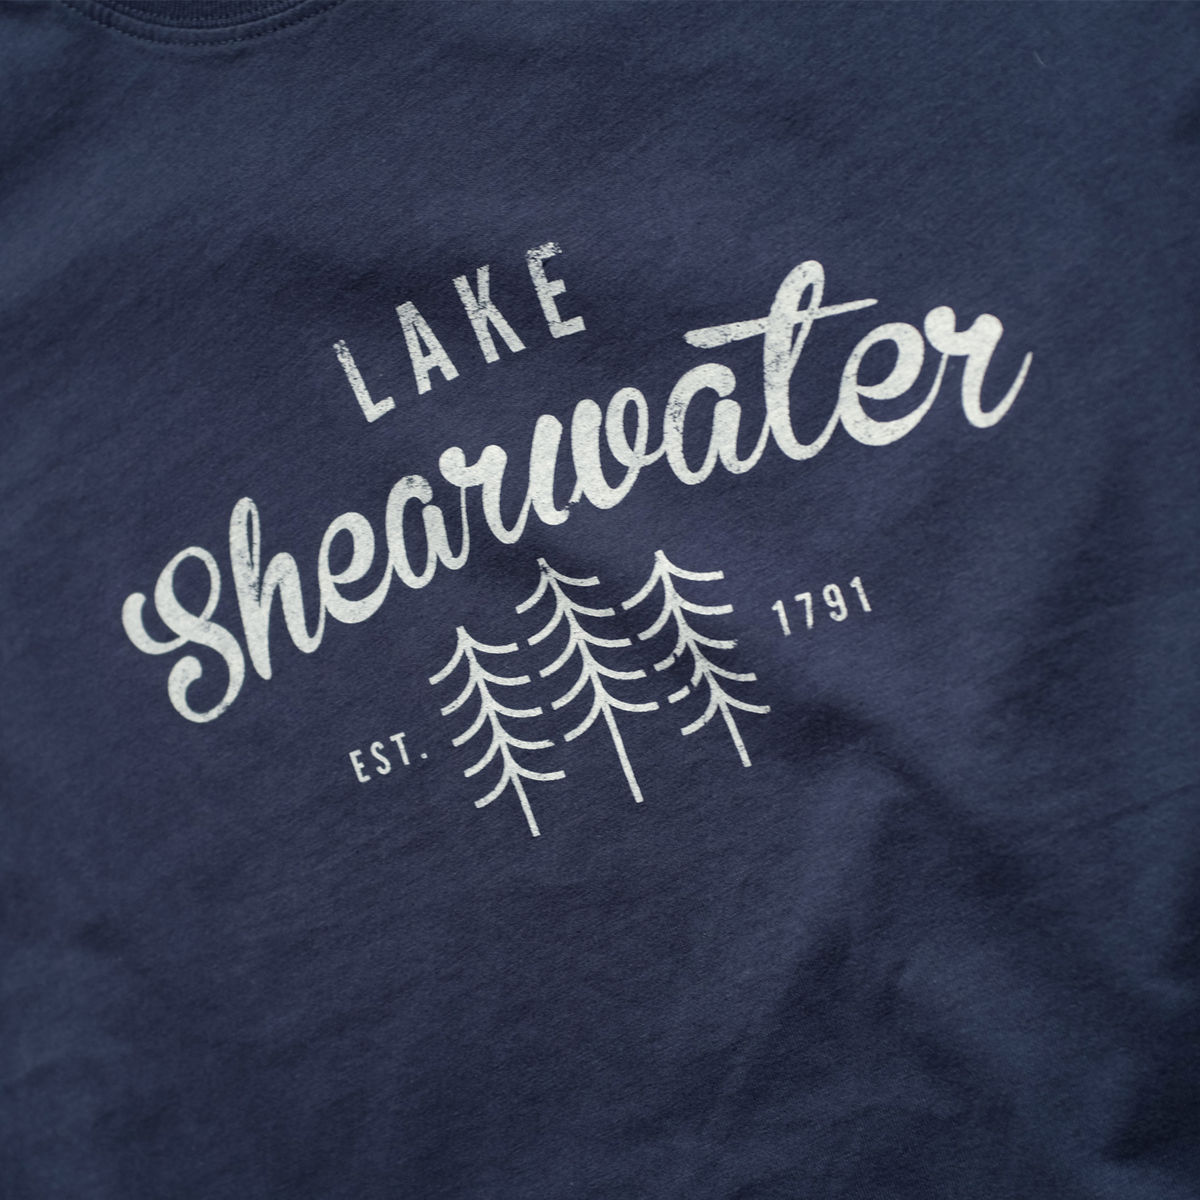 Lake Shearwater Womens 100% Organic T-shirt - product images  of